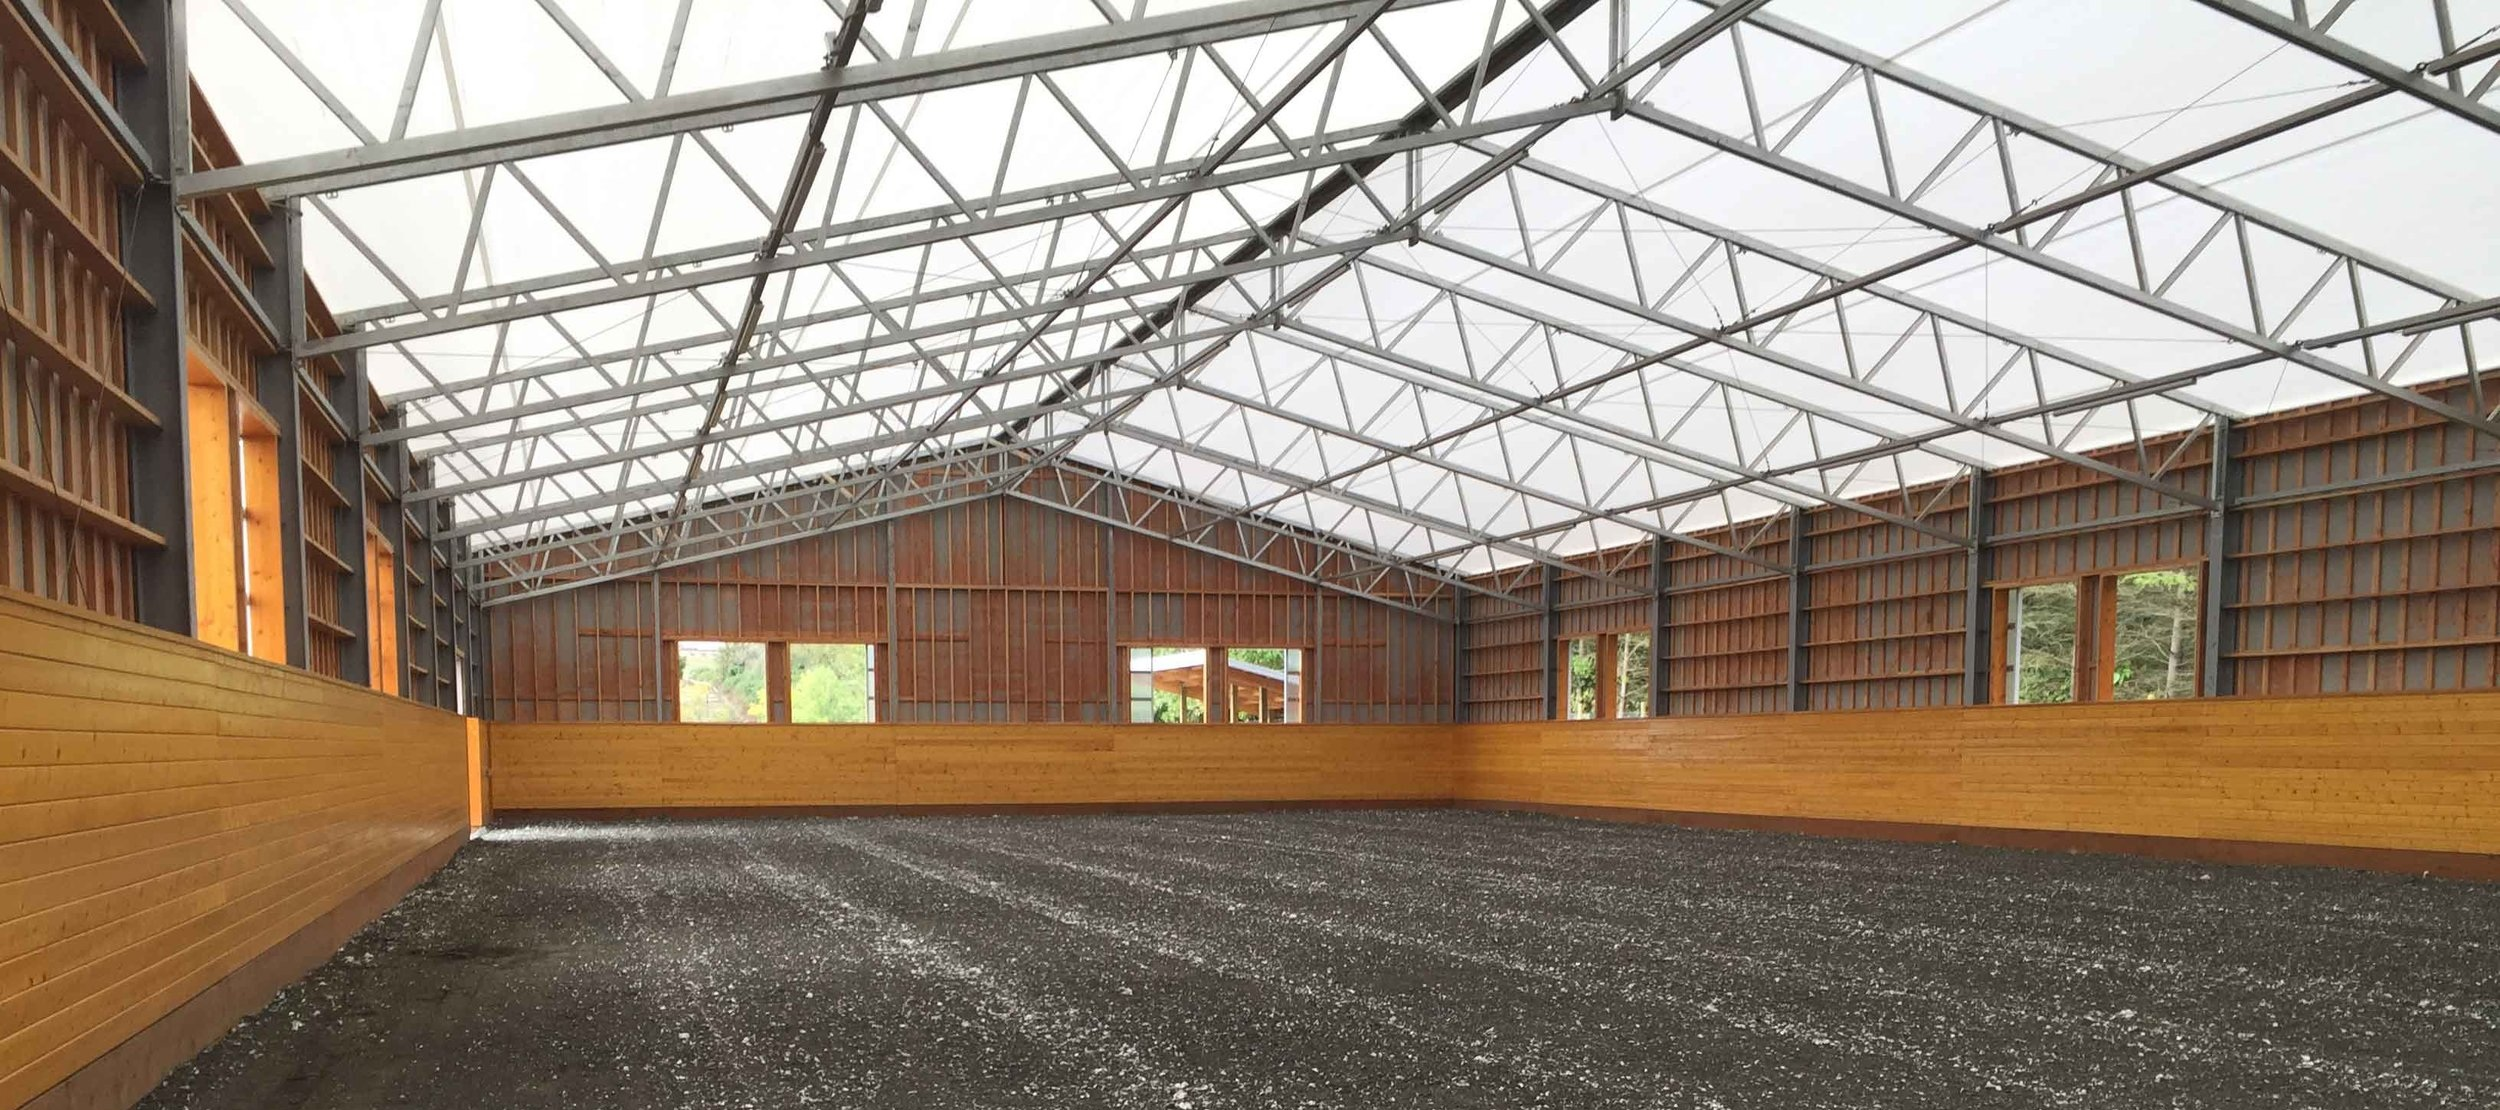 Arenas — Innovative equine Systems